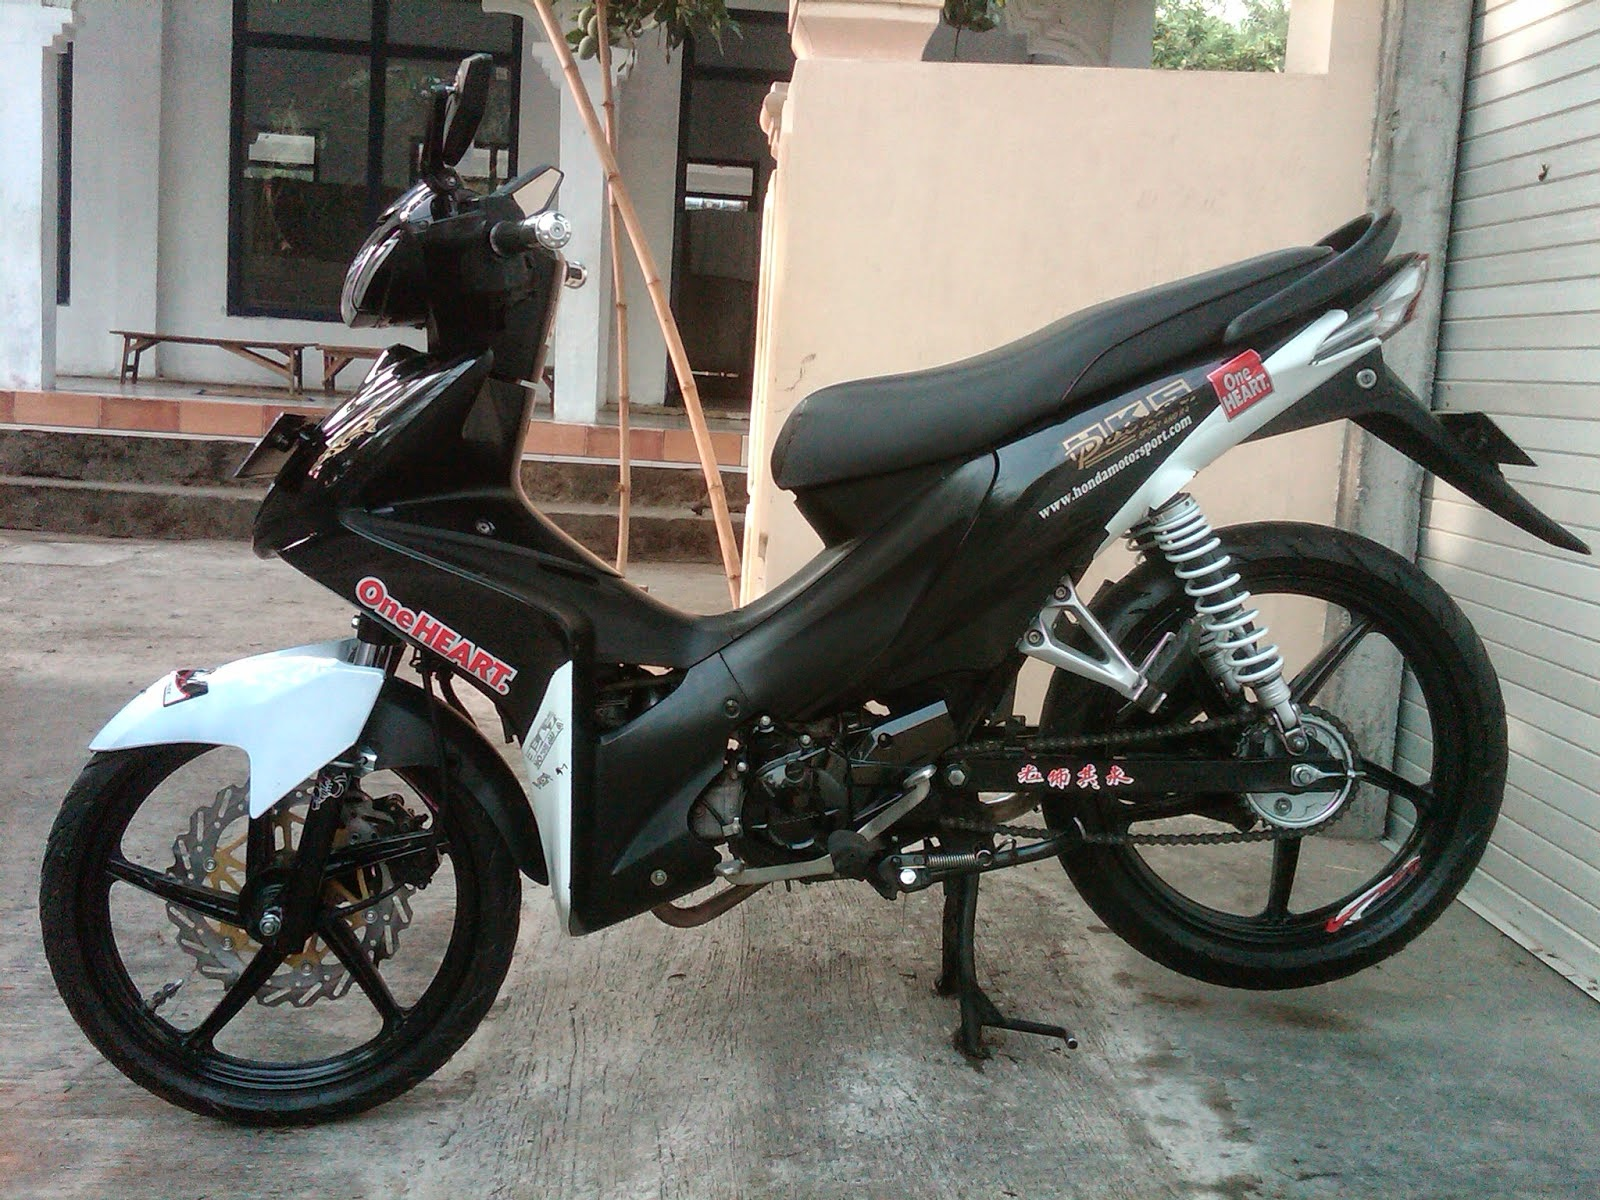 Revo Fit fi Modif Revo Fit Modifikasi Warna